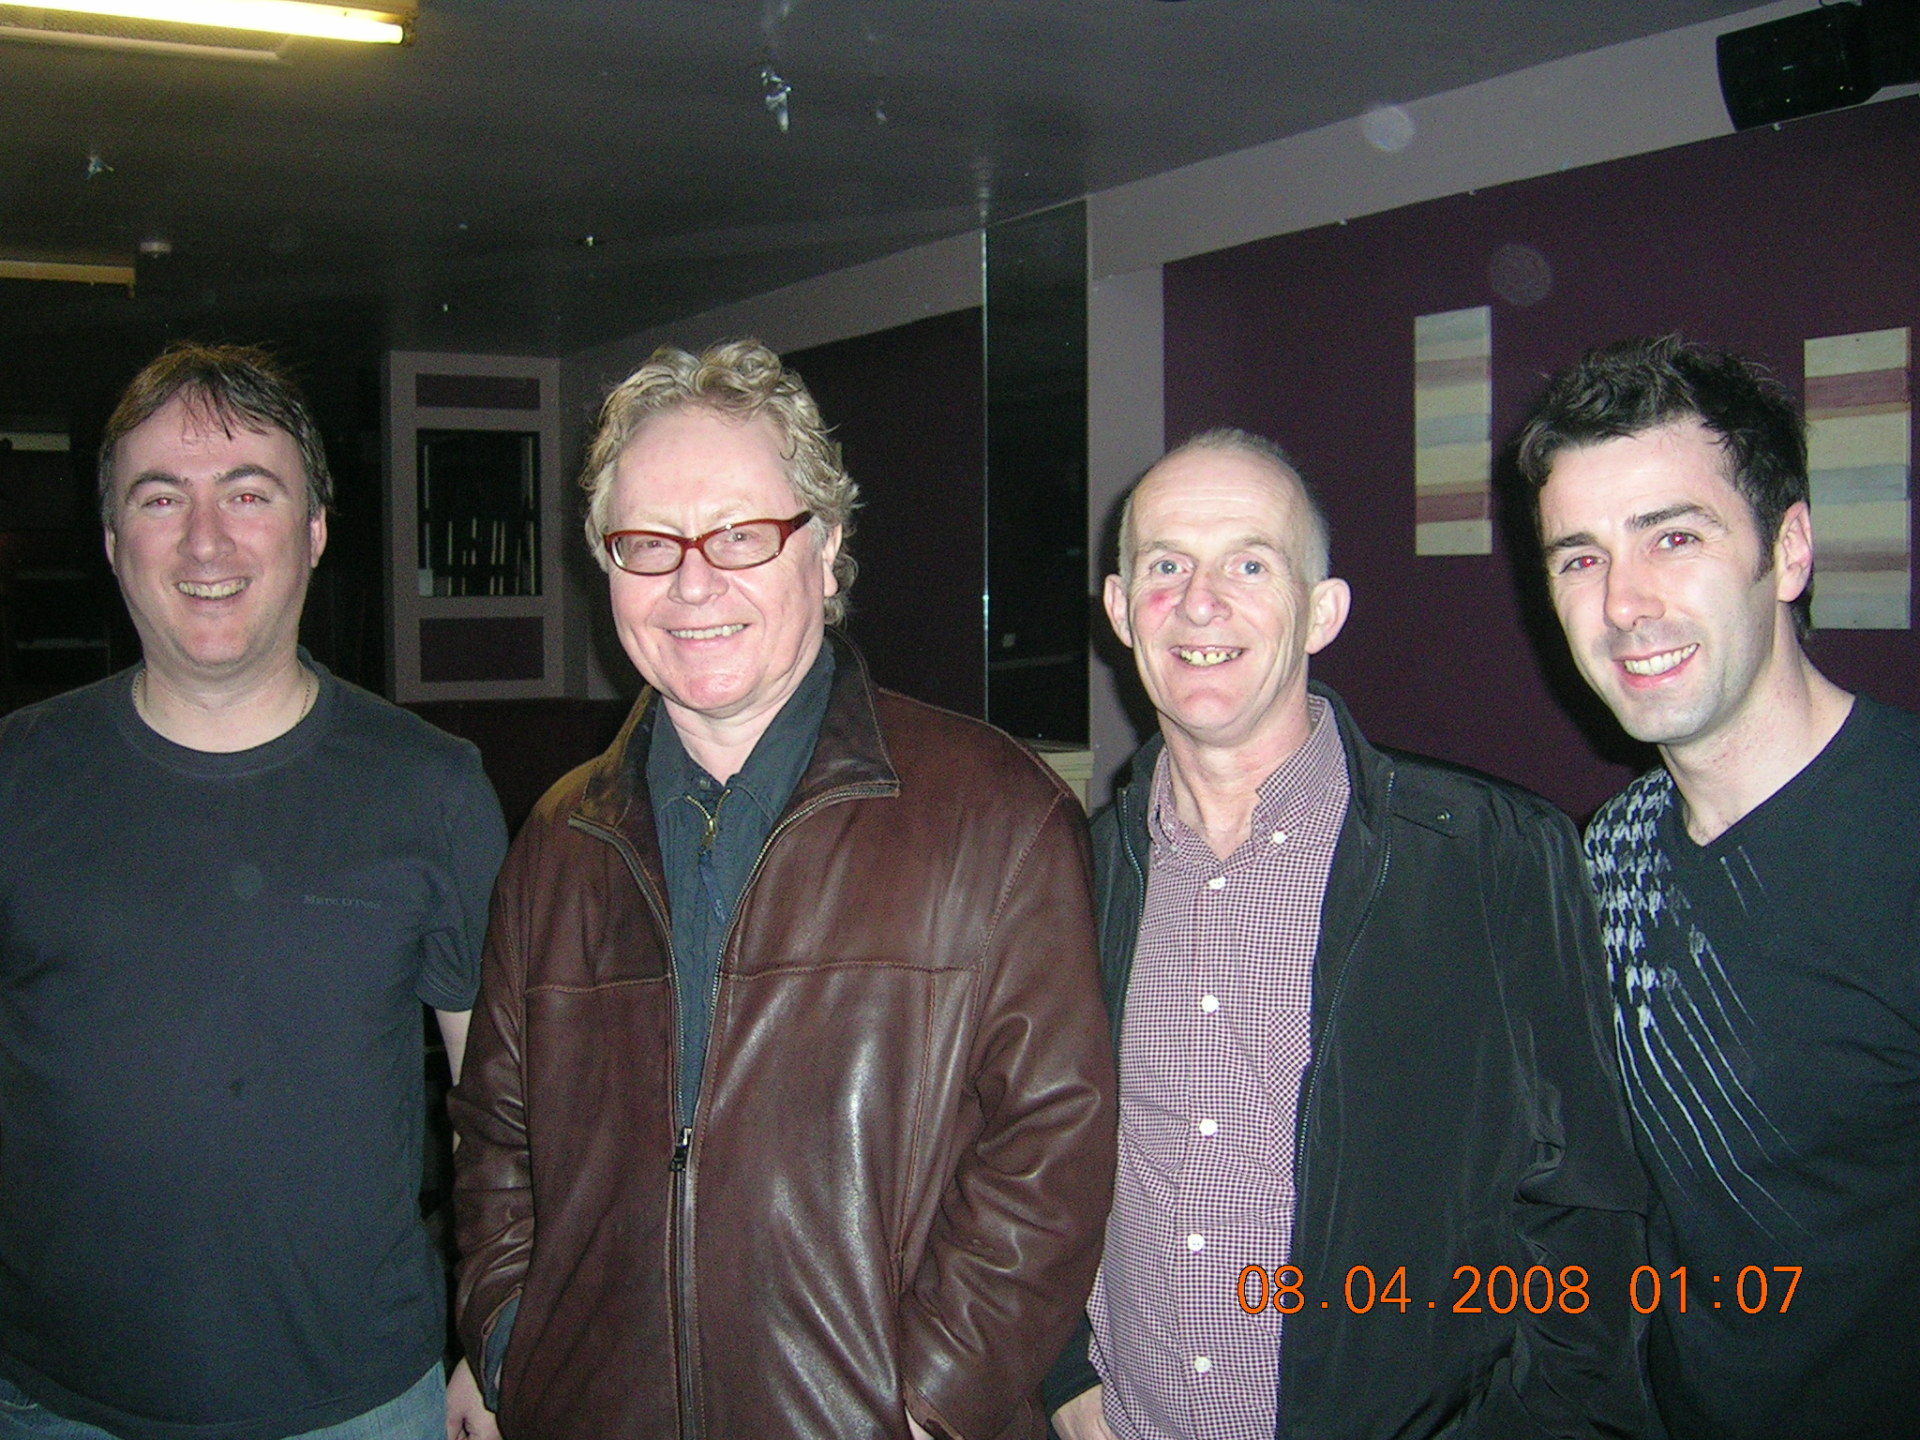 With Paul Brady, Ping and Mickey J Harte